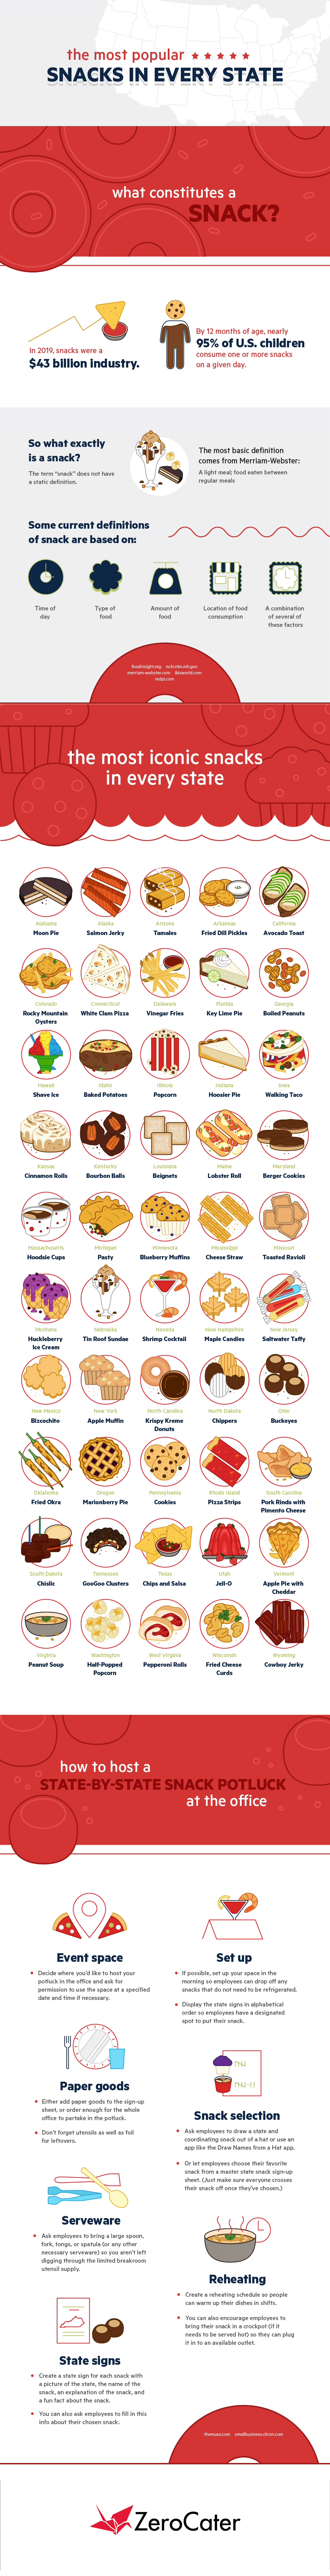 The Most Iconic Snacks by State